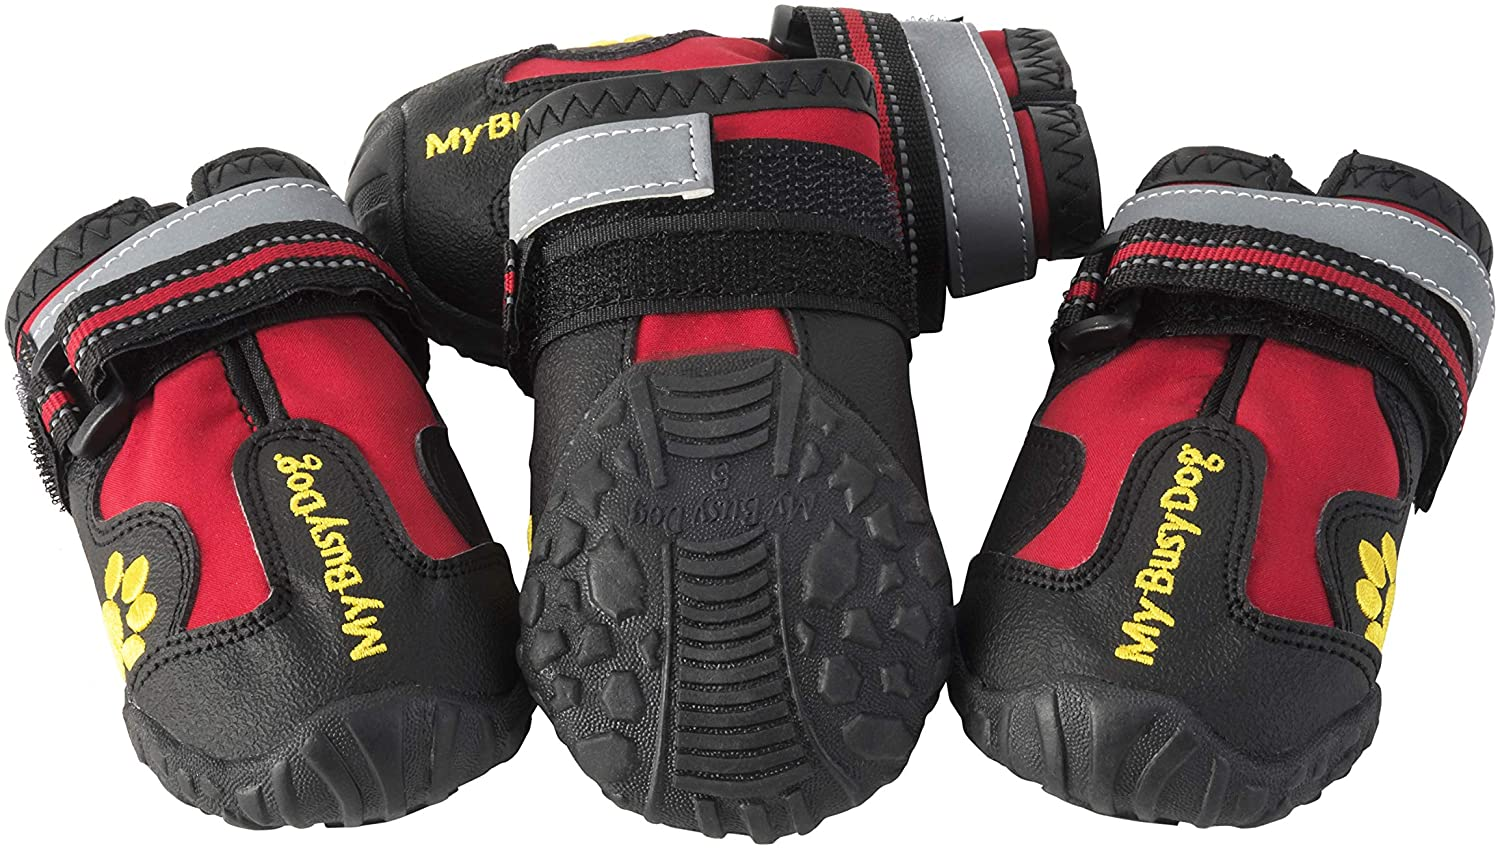 My Busy Dog Waterproof Boots